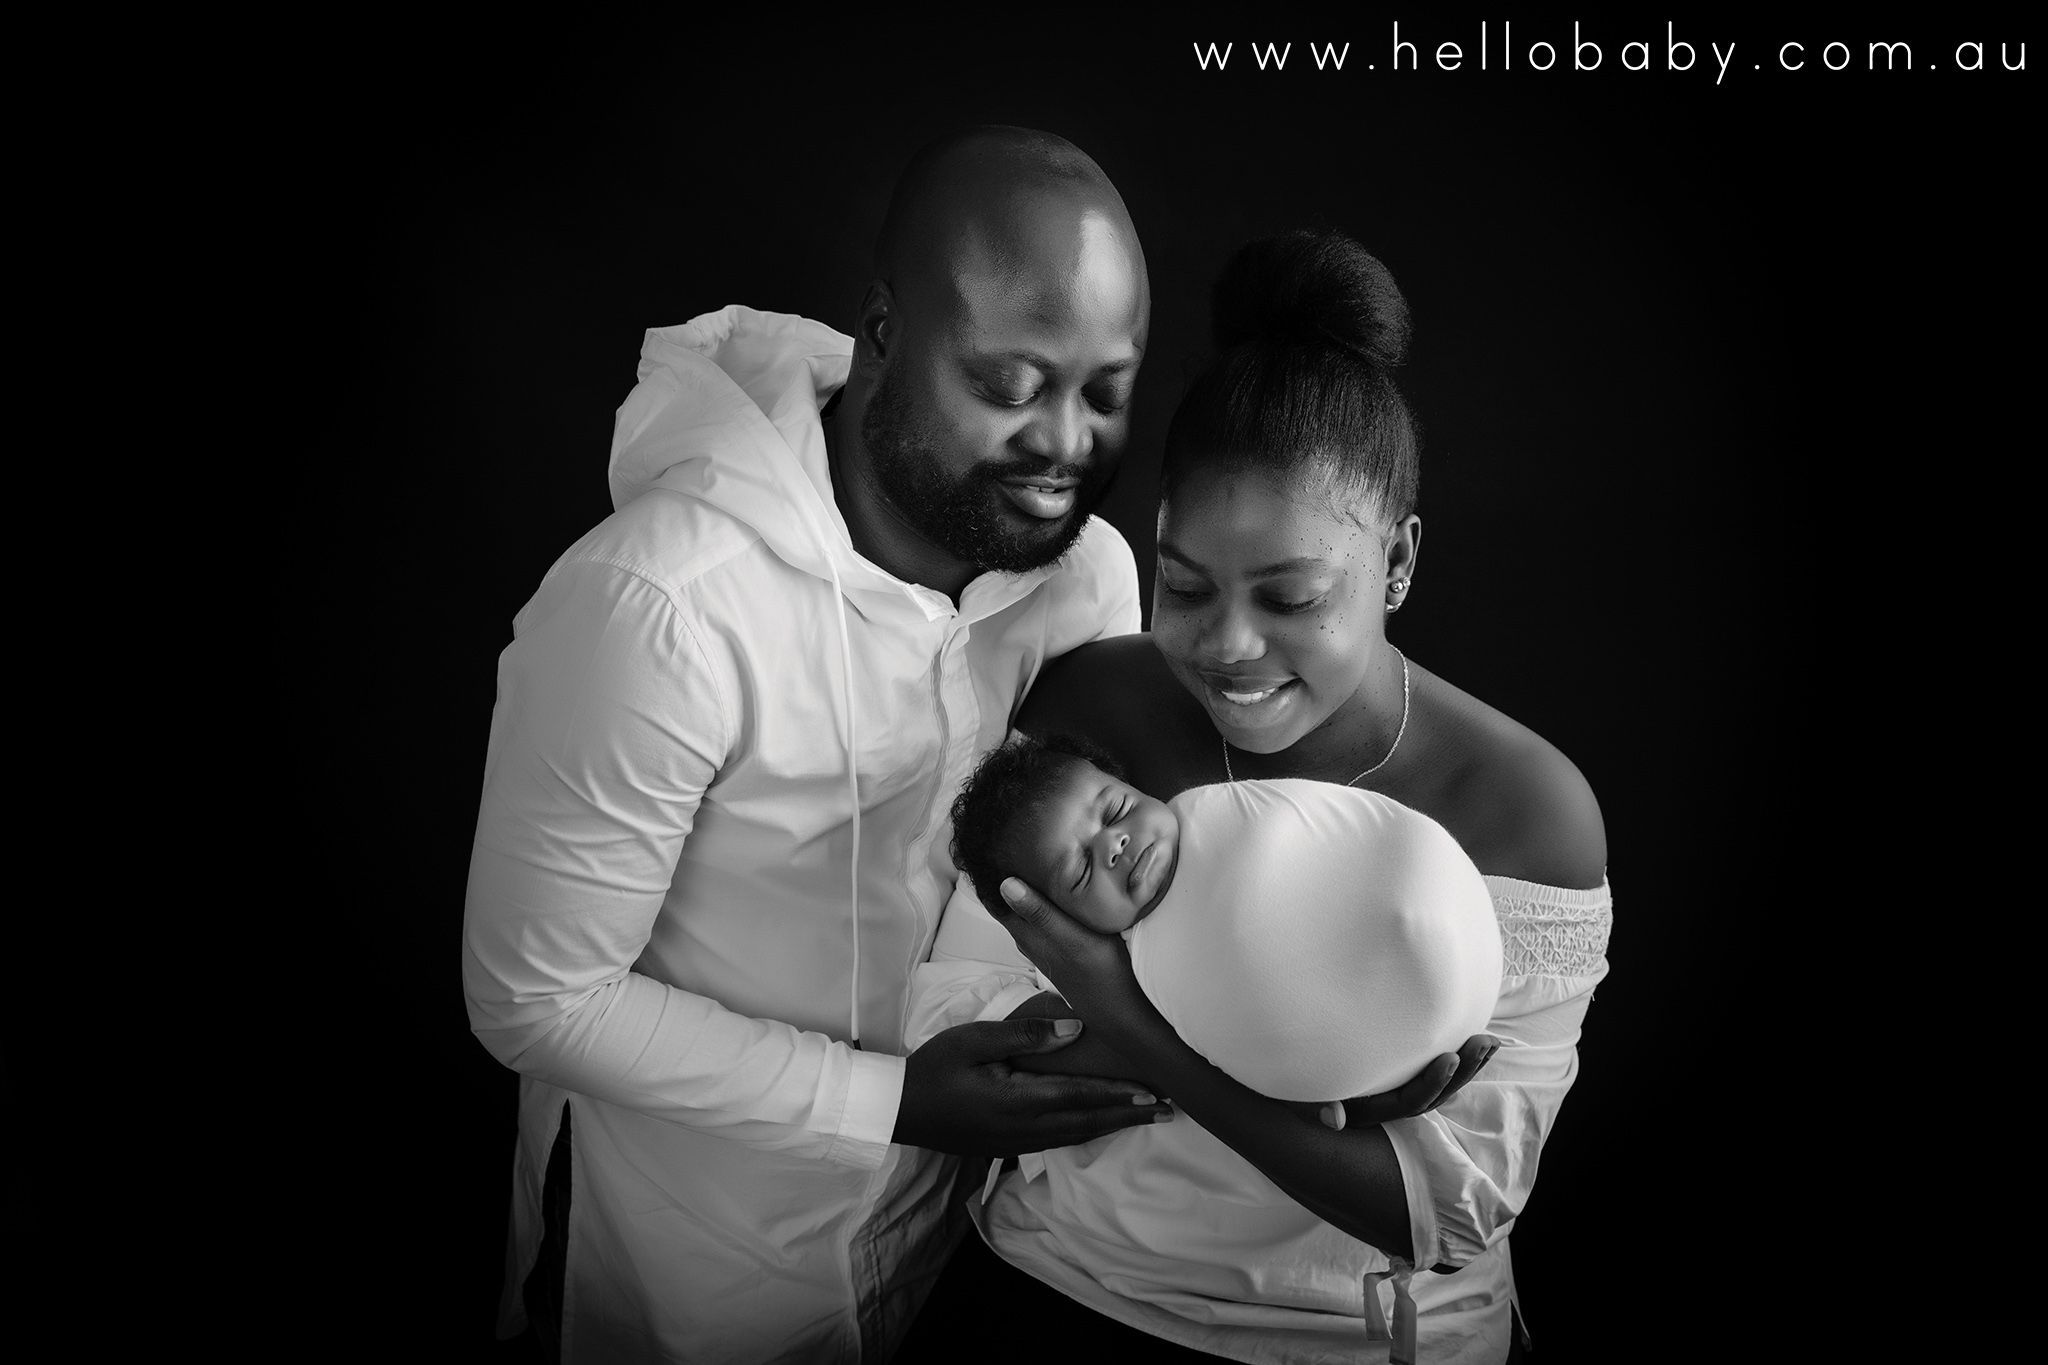 Newborn poses wrapping newborn photography hellobaby 🏆 award winning flat rate service 🙋 6 staff 🏠 2 studios founder of the international newborn